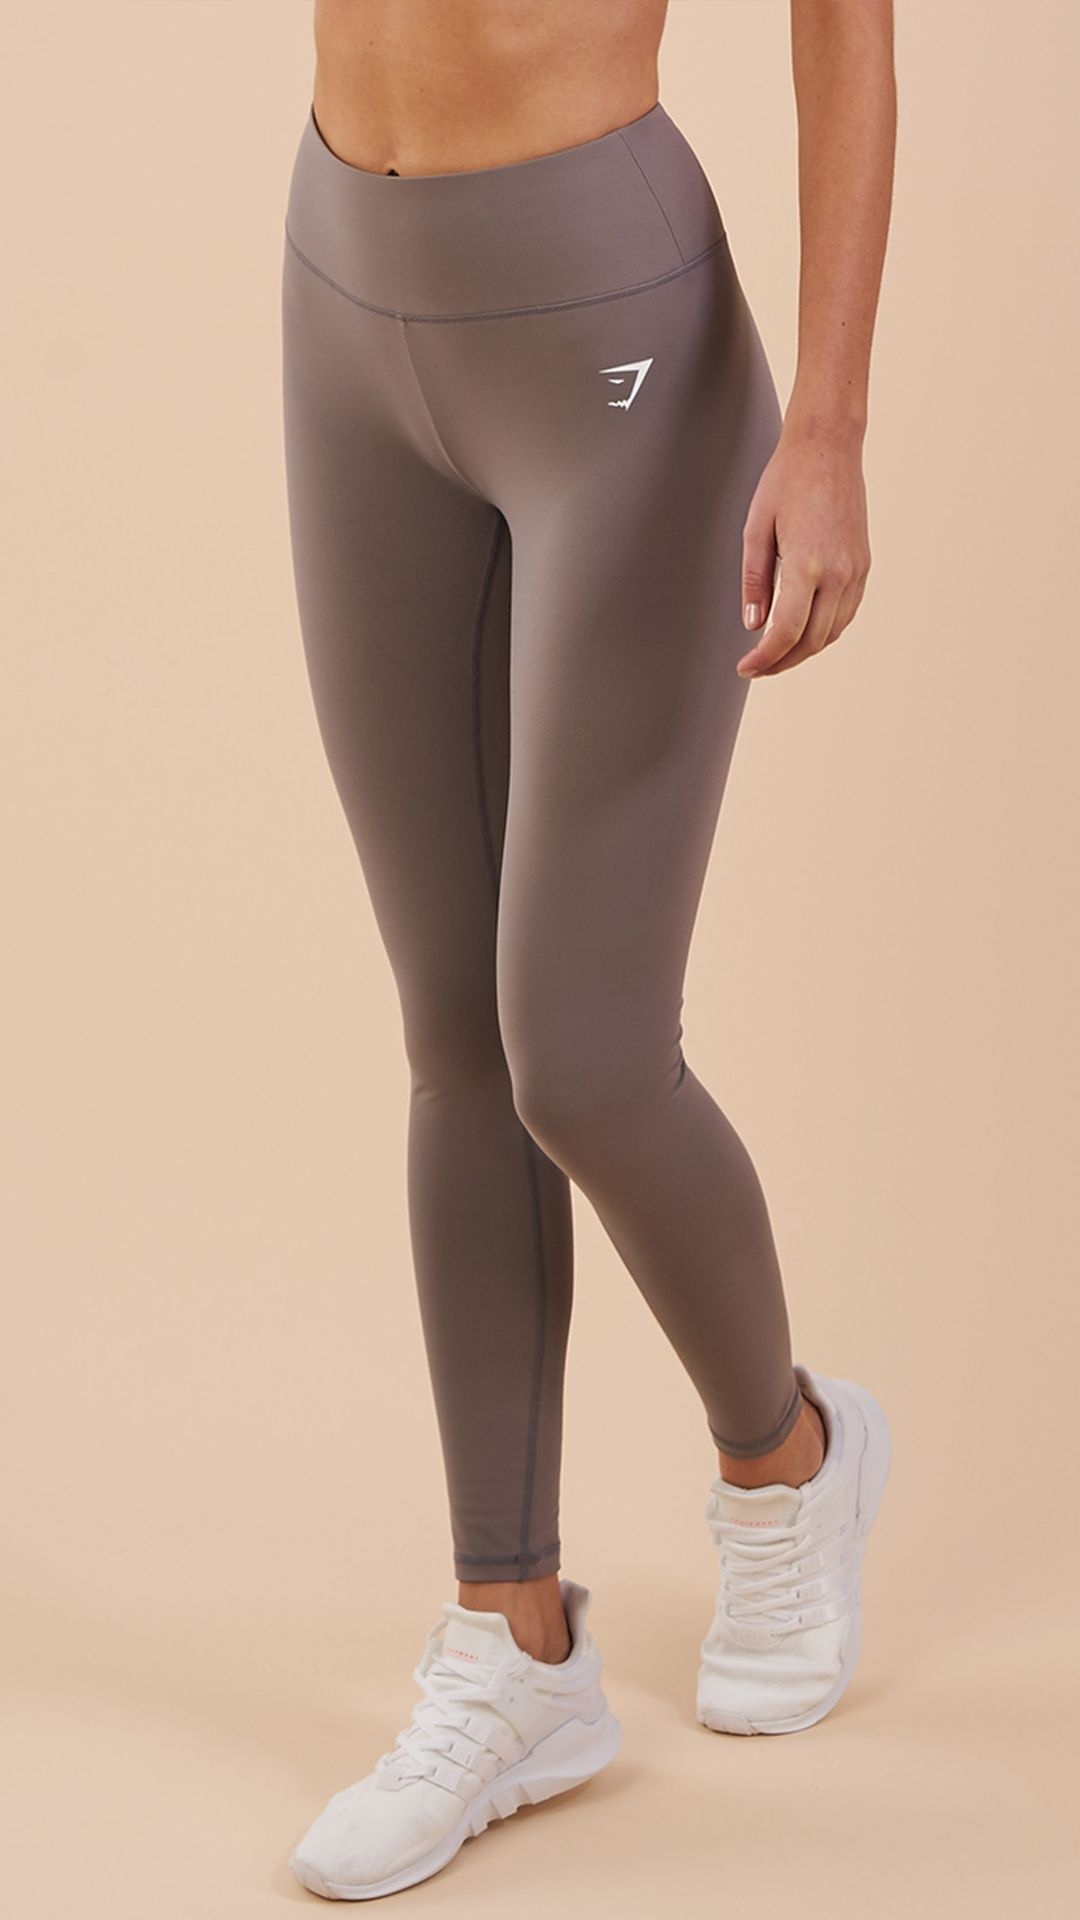 7cdcc8e75ff Your next must-have workout wardrobe addition. The Women's Dreamy ...